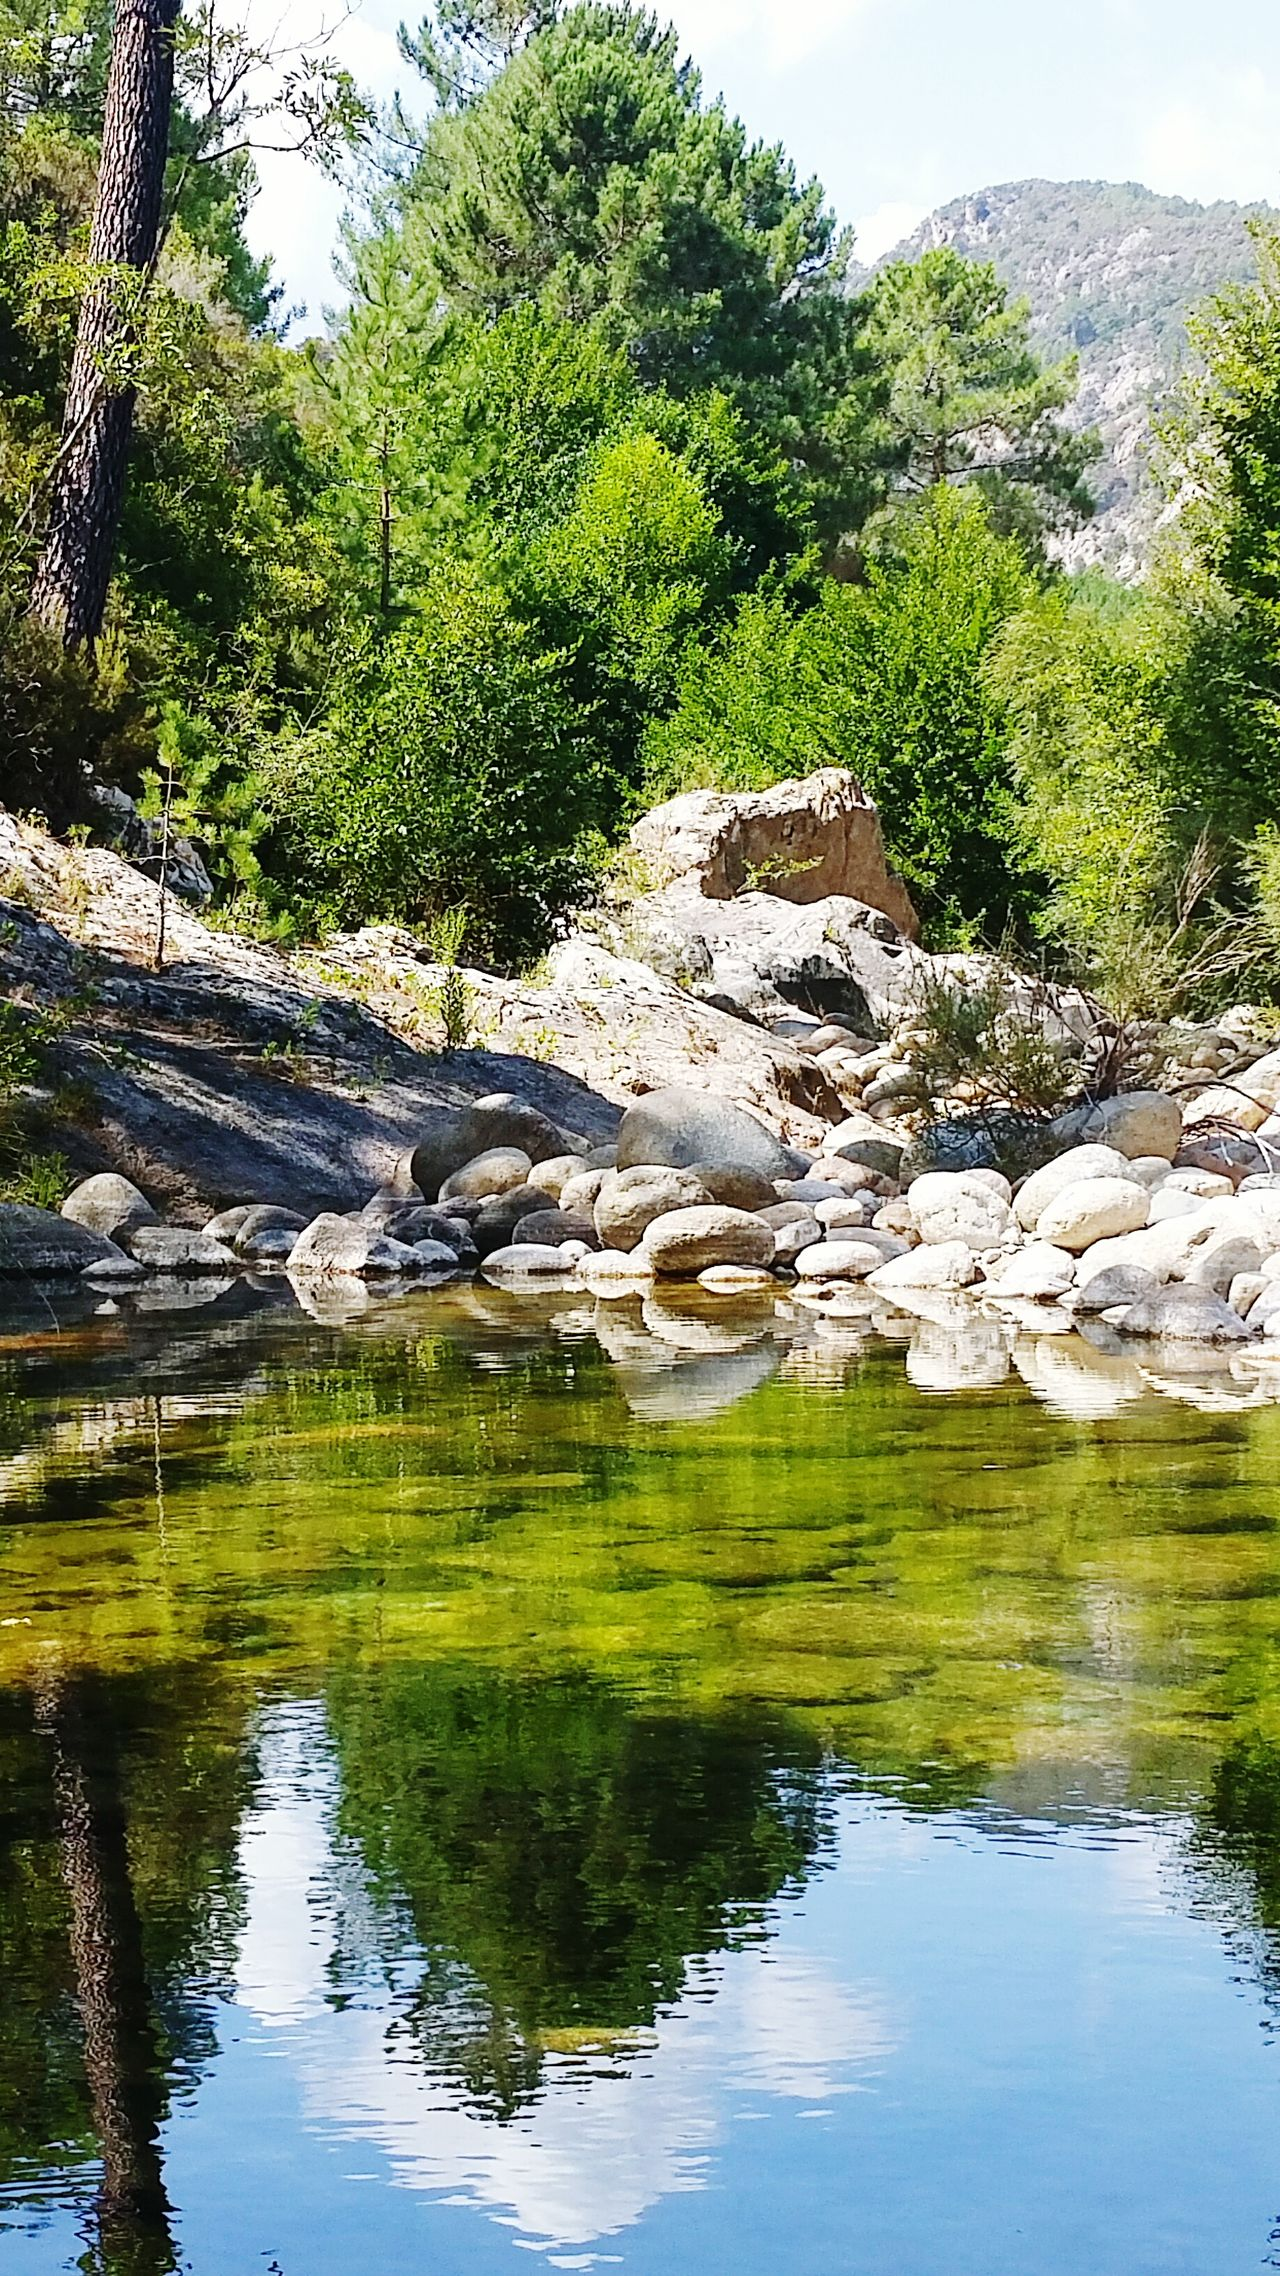 Riviere Solenzara Water Tree Nature Reflection No People Outdoors Green Color Lake Growth Beauty In Nature Plant Day Scenics Sky Landscape GetbetterwithAlex Solenzara River Corse Corsica Riviere Zen Naturelover Riverside Quietness Freedom